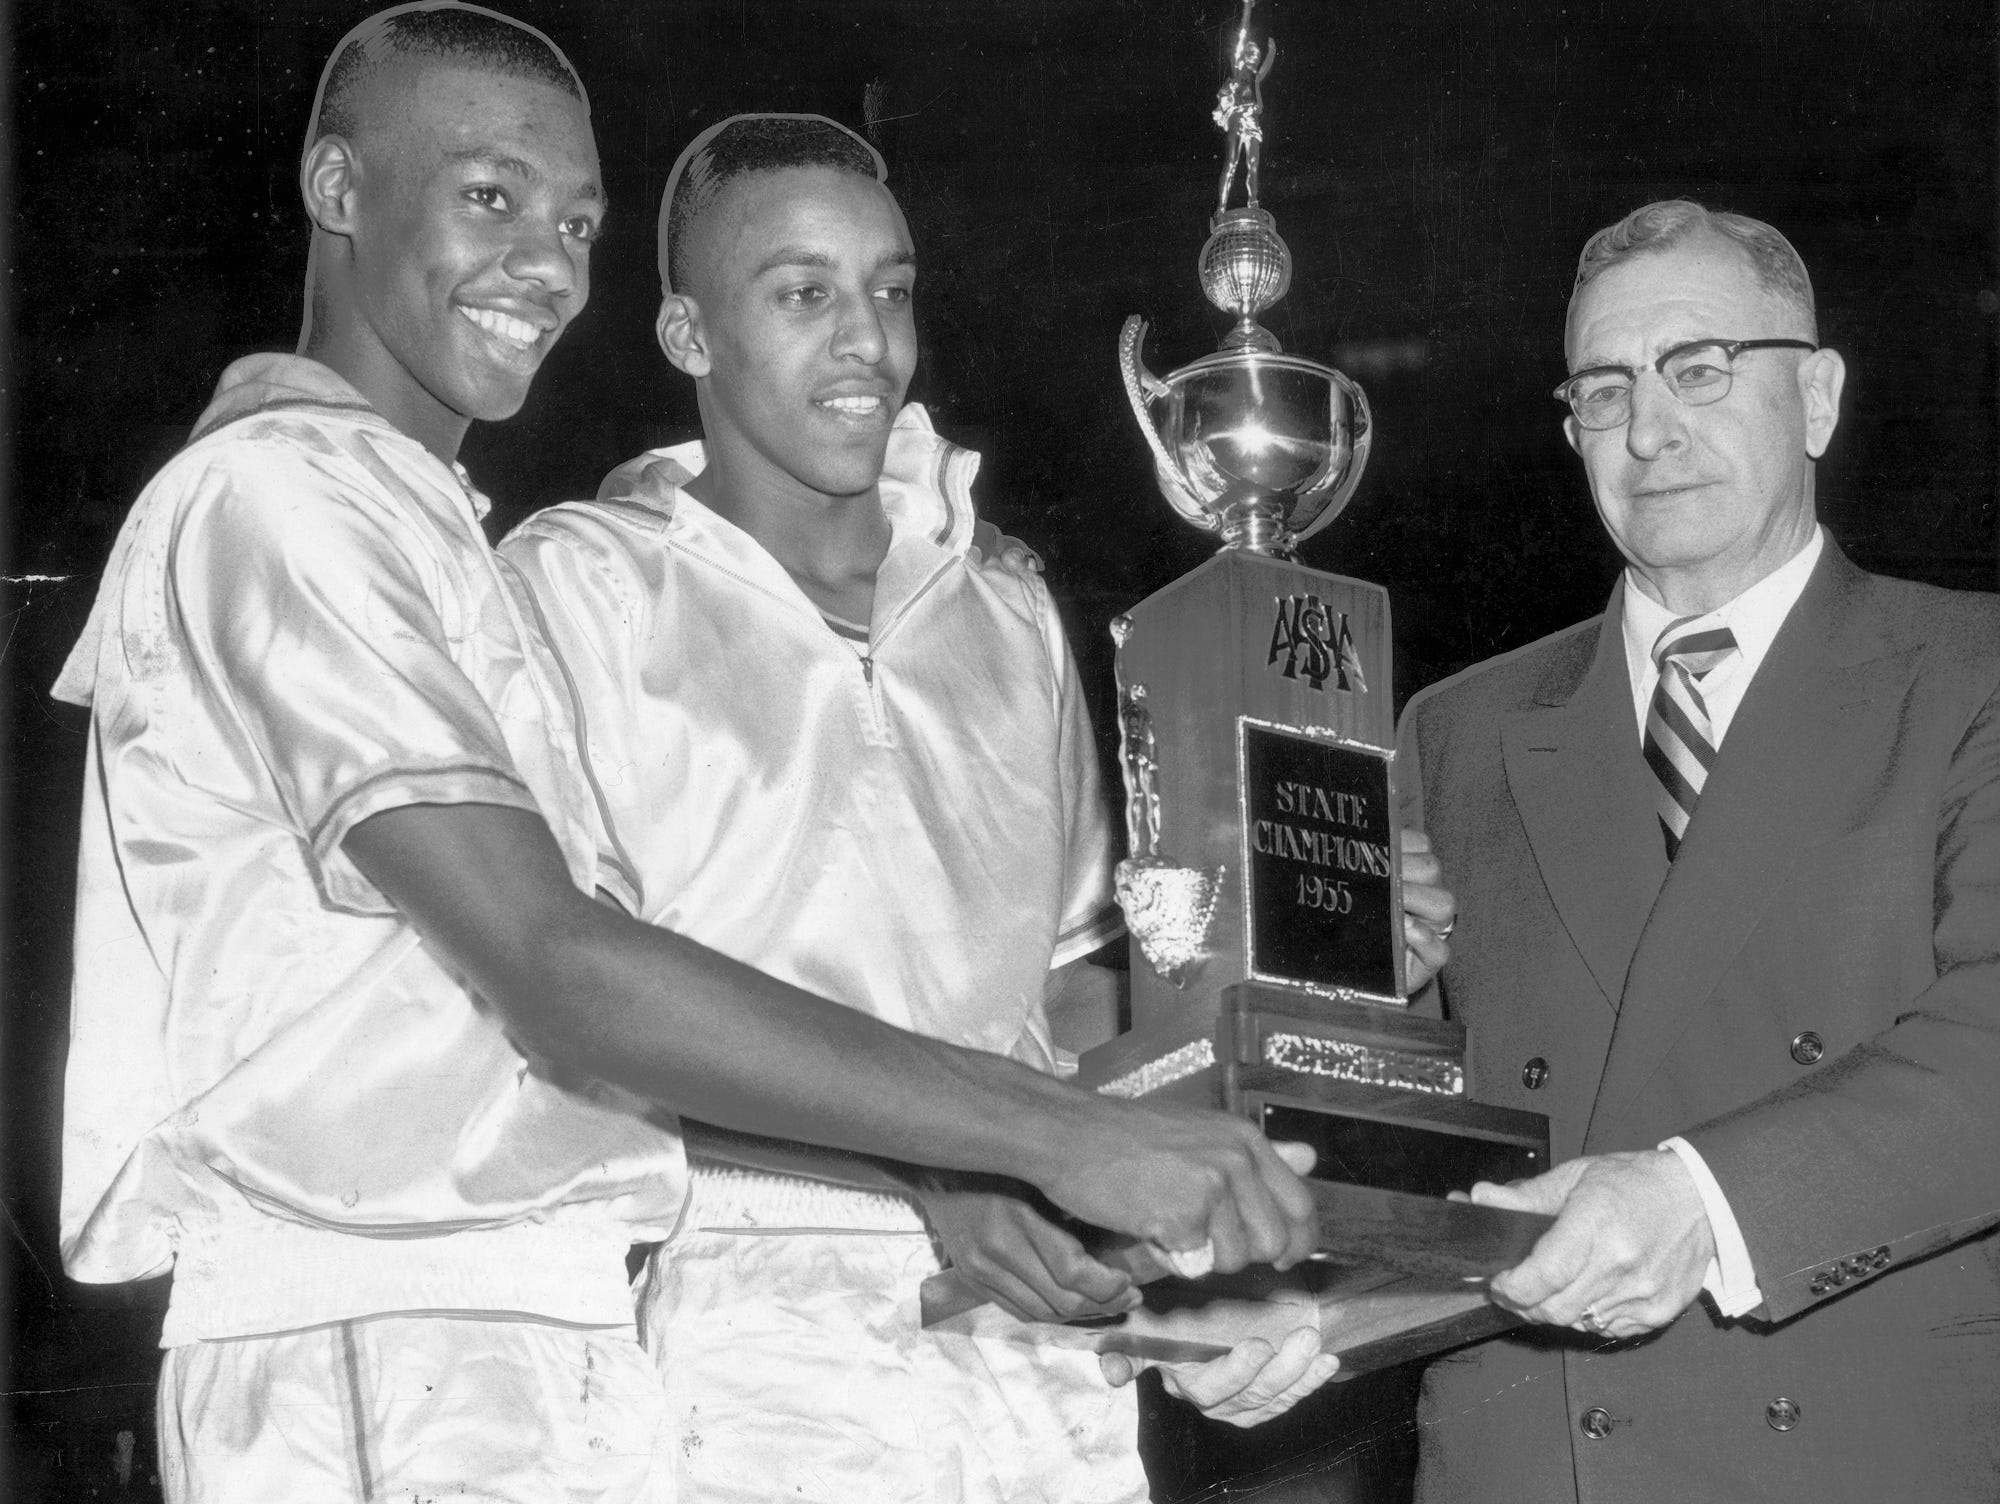 Oscar Robertson, left, and Willie Merriweather, co-captains of Attucks happily accept the state championship trophy from Otton Albright of Cayuga, president of IHSAA.